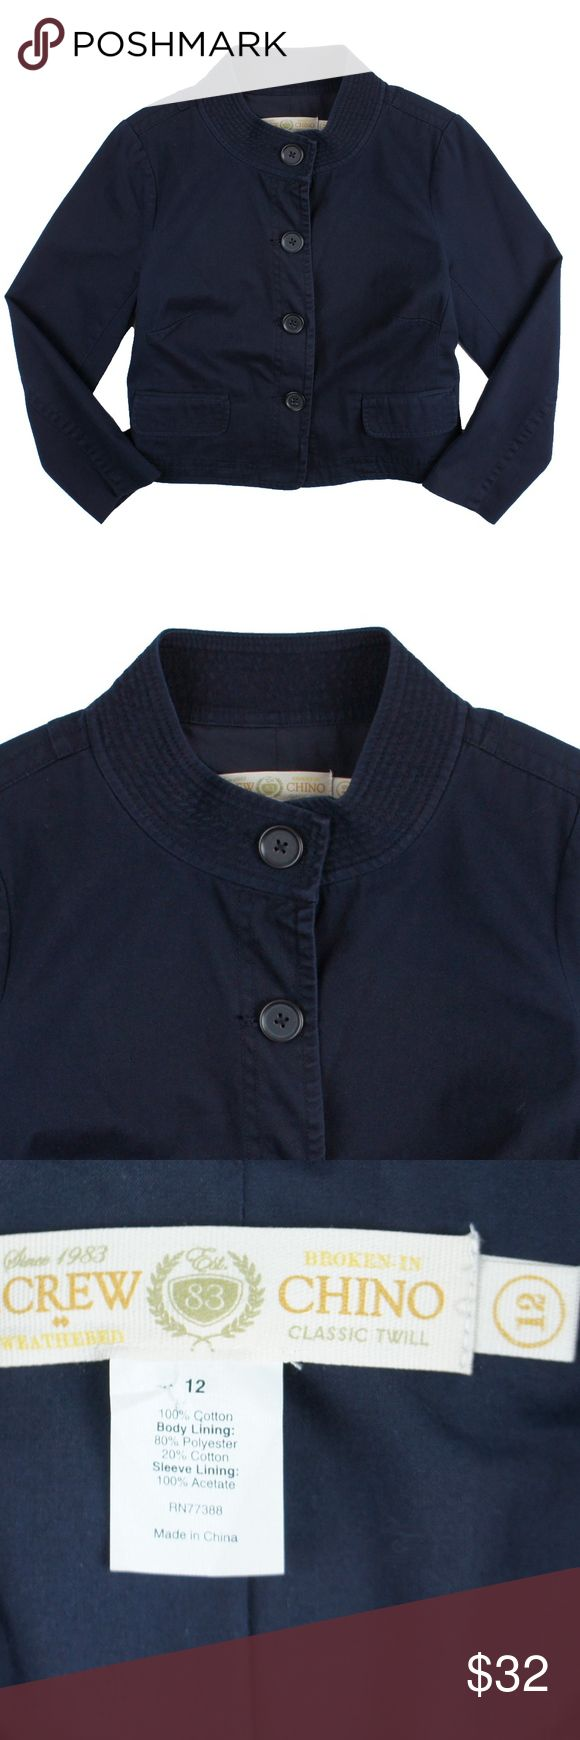 "J Crew Navy Blue Cotton Chino Jacket Size - 12  This navy blue cotton chino jacket from JCREW is in excellent condition. It features button closures and is fully lined. Made of 100% Cotton.   Measures:  Bust: 41"" Total Length: 20.5"" Sleeves: 22.5"" J. Crew Jackets & Coats"